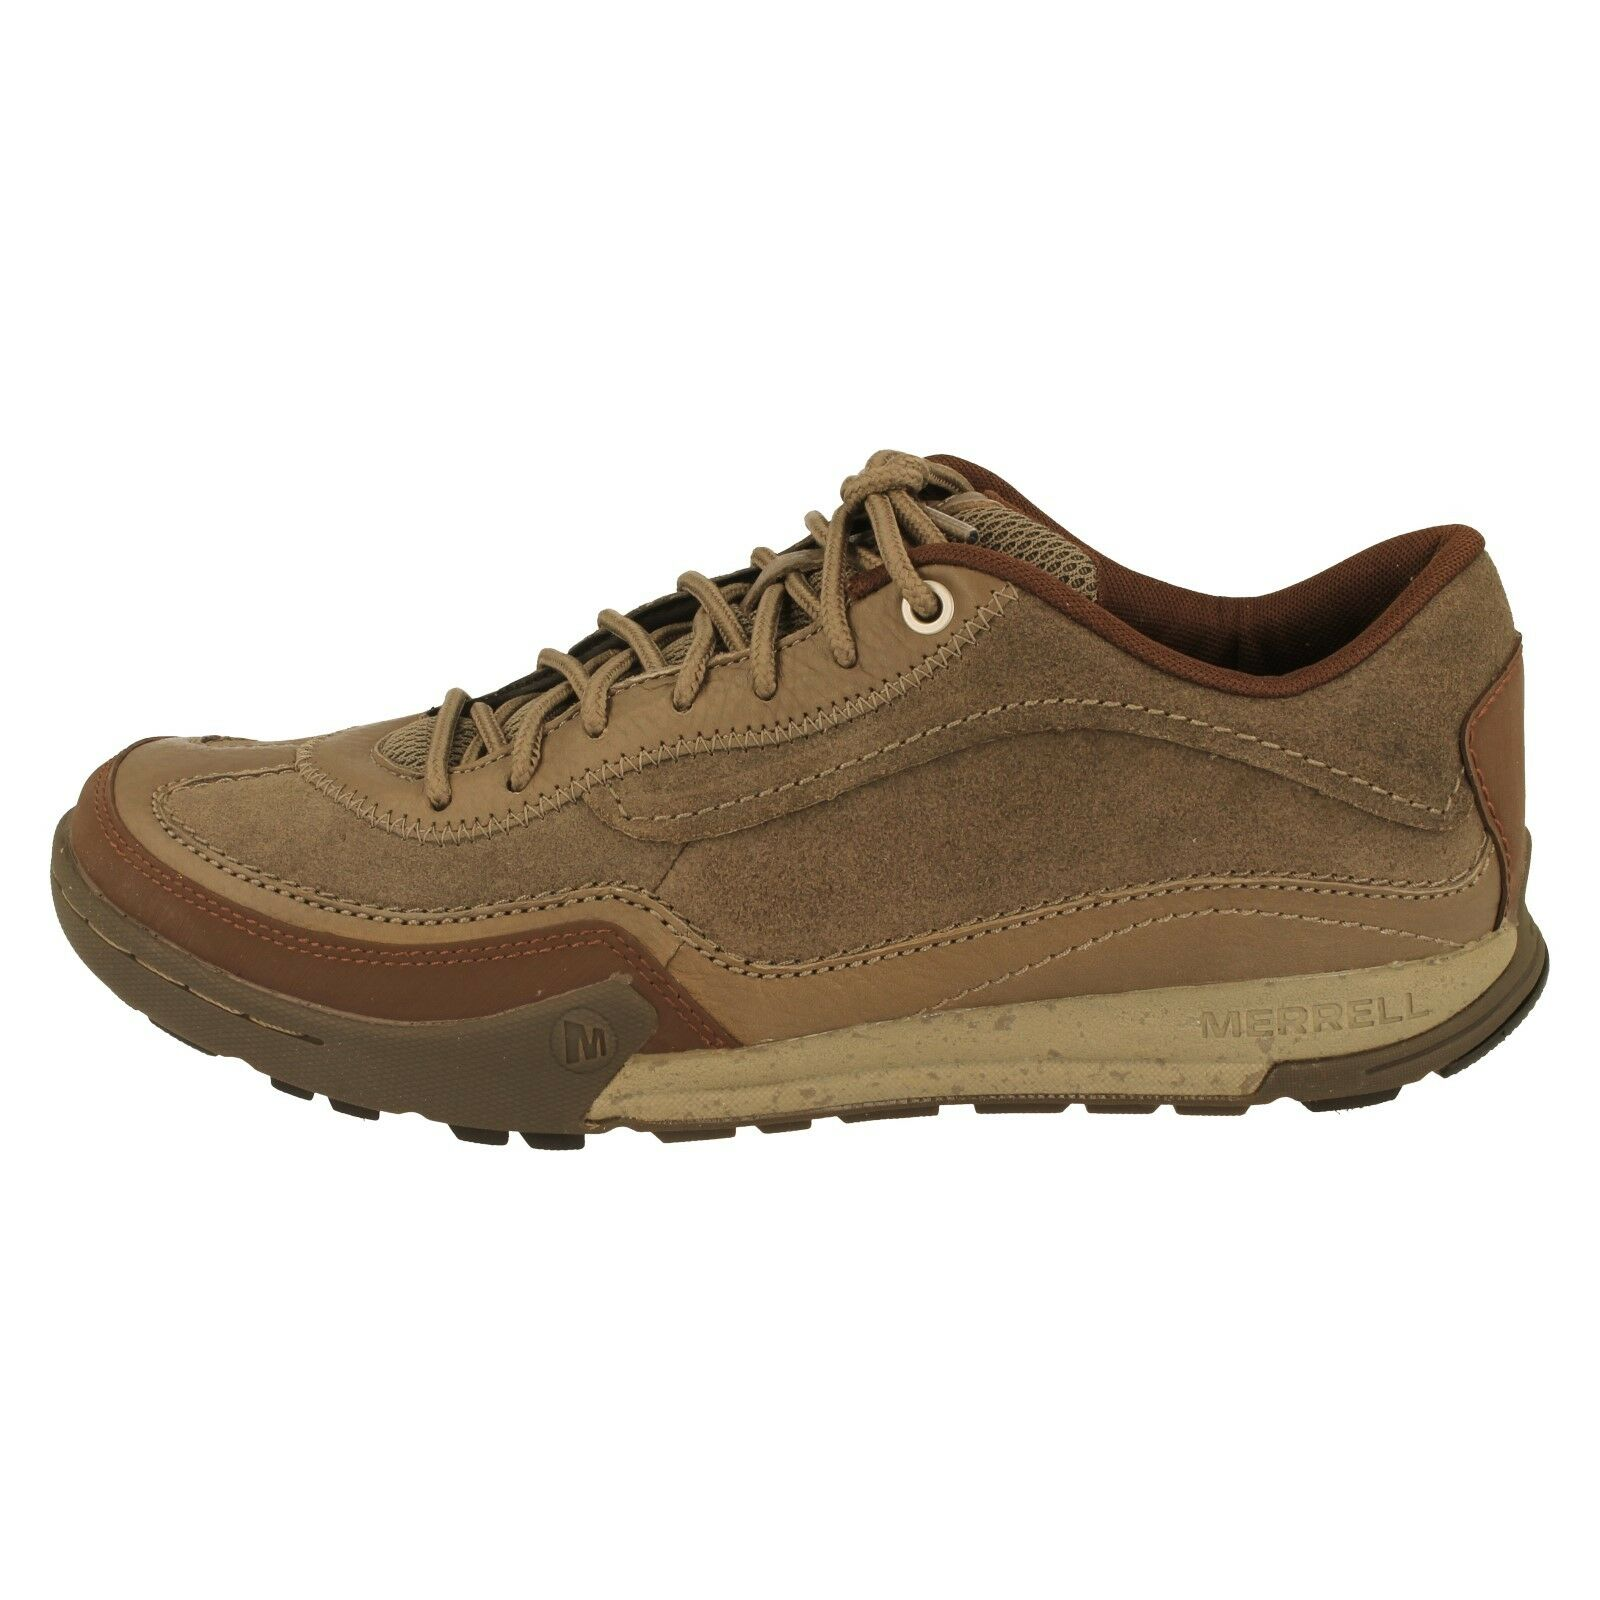 Hombre's Merrell Trainers - Mountain Mountain Mountain Diggs J69199 d0b8a3